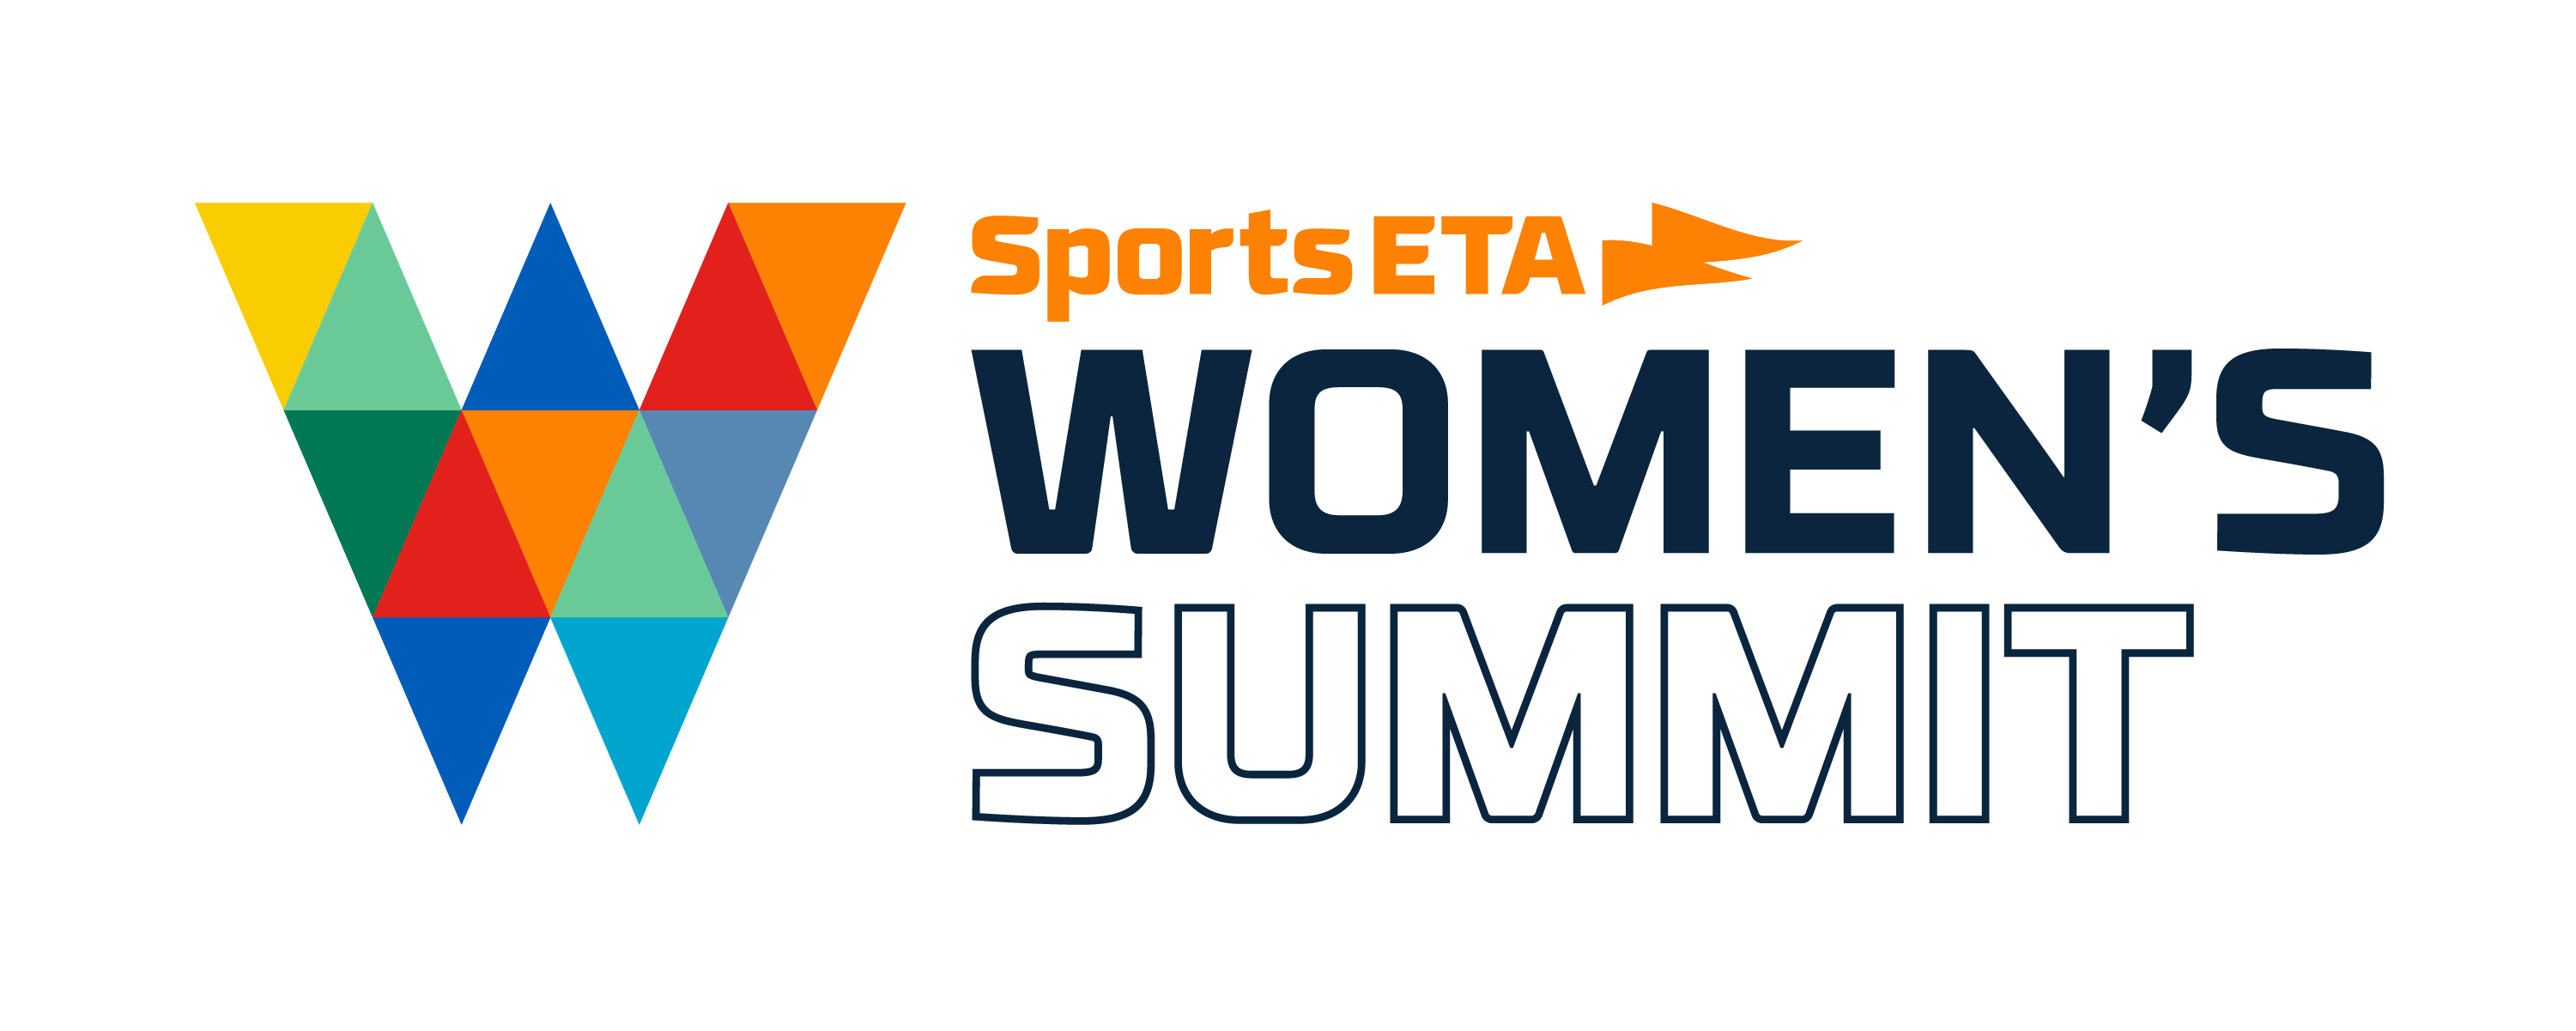 Women's Summit - Education - Sports Events and Tourism